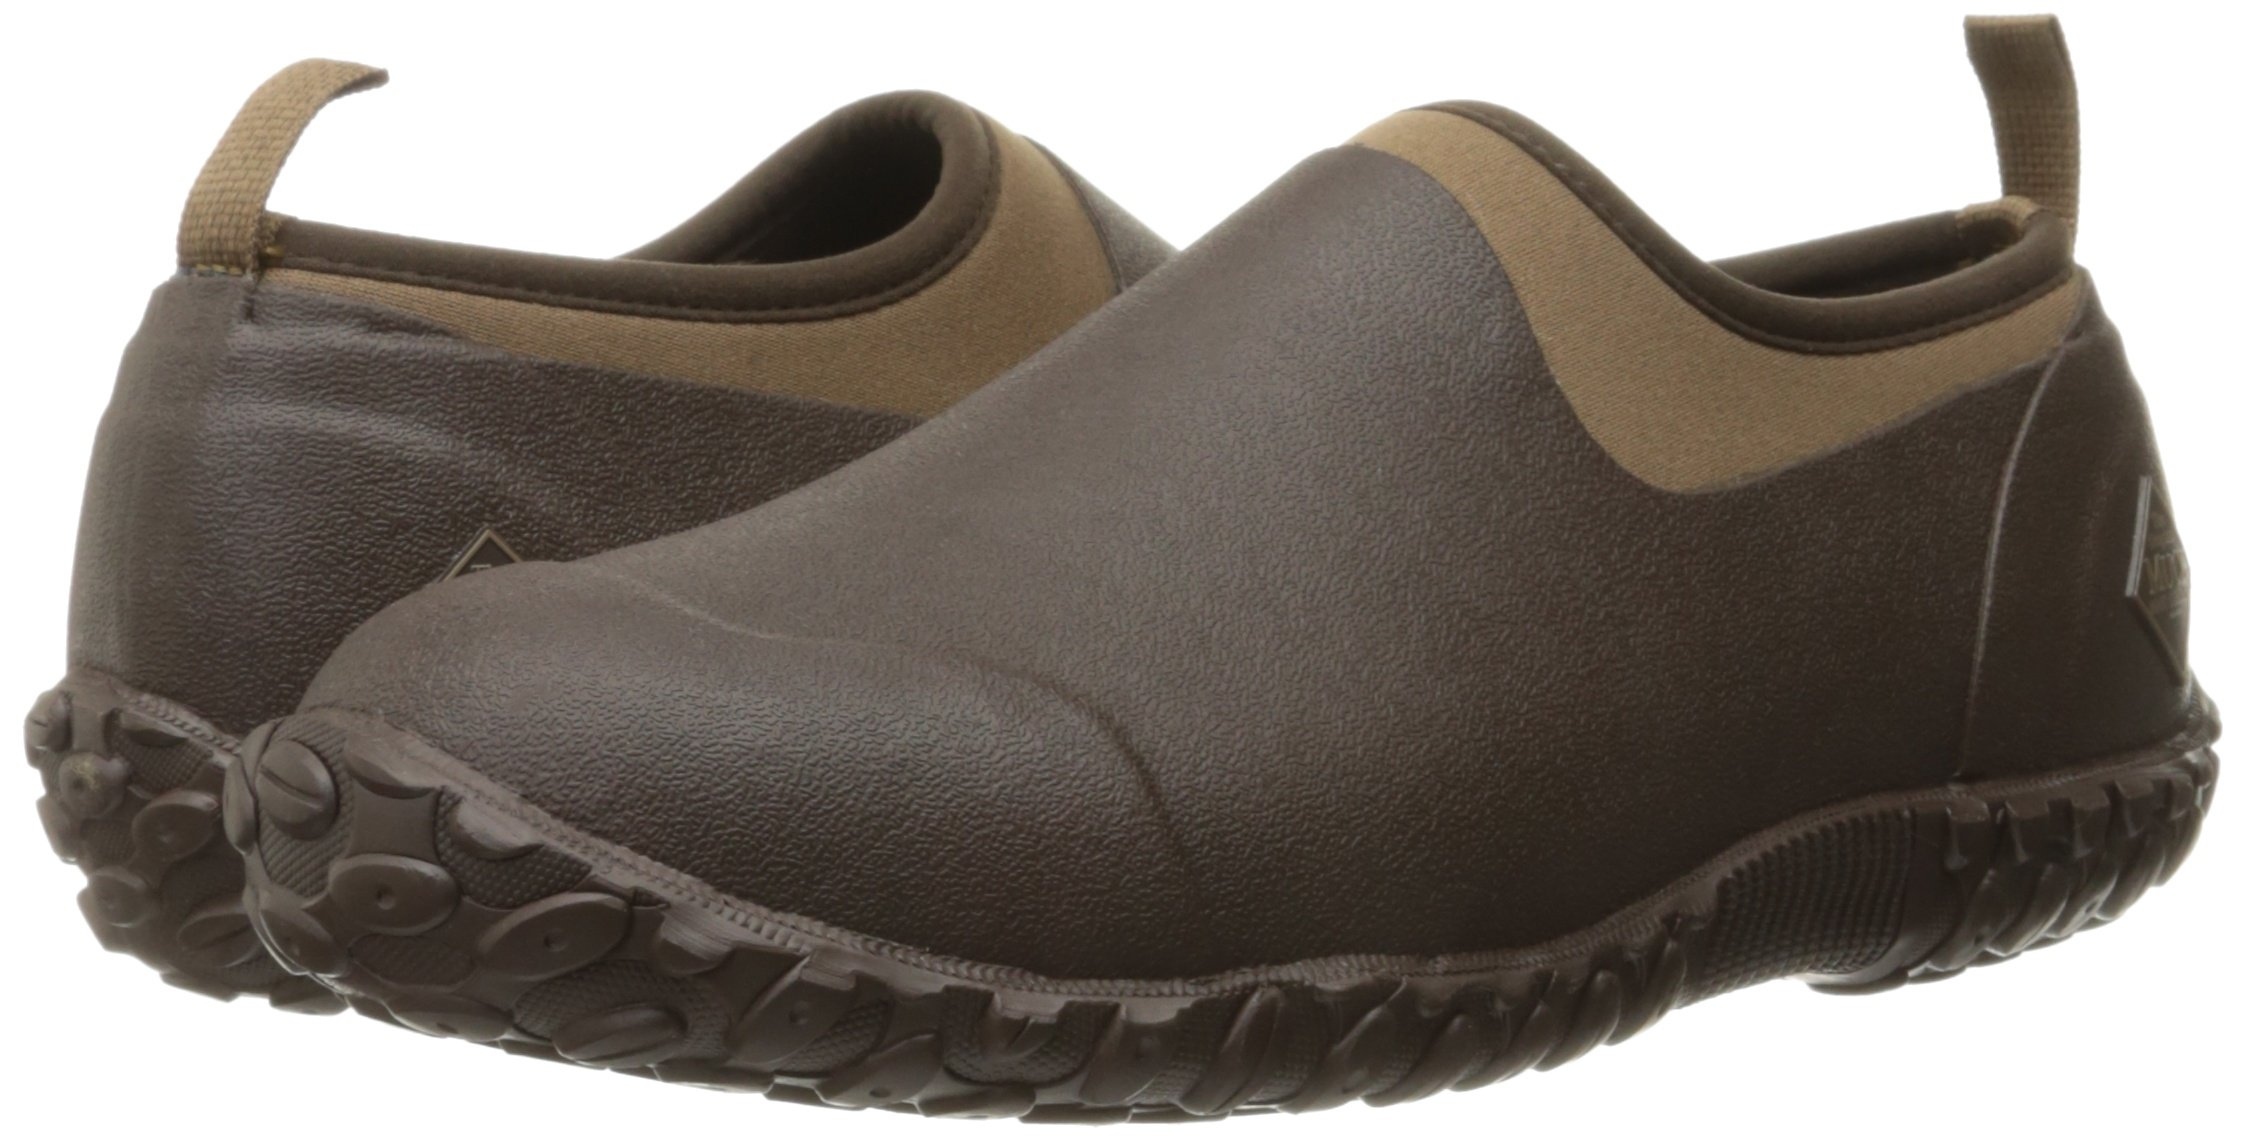 Muckster ll Men's Rubber Garden Shoes,Black/Otter,8 US/8-8.5 M US by Muck Boot (Image #6)